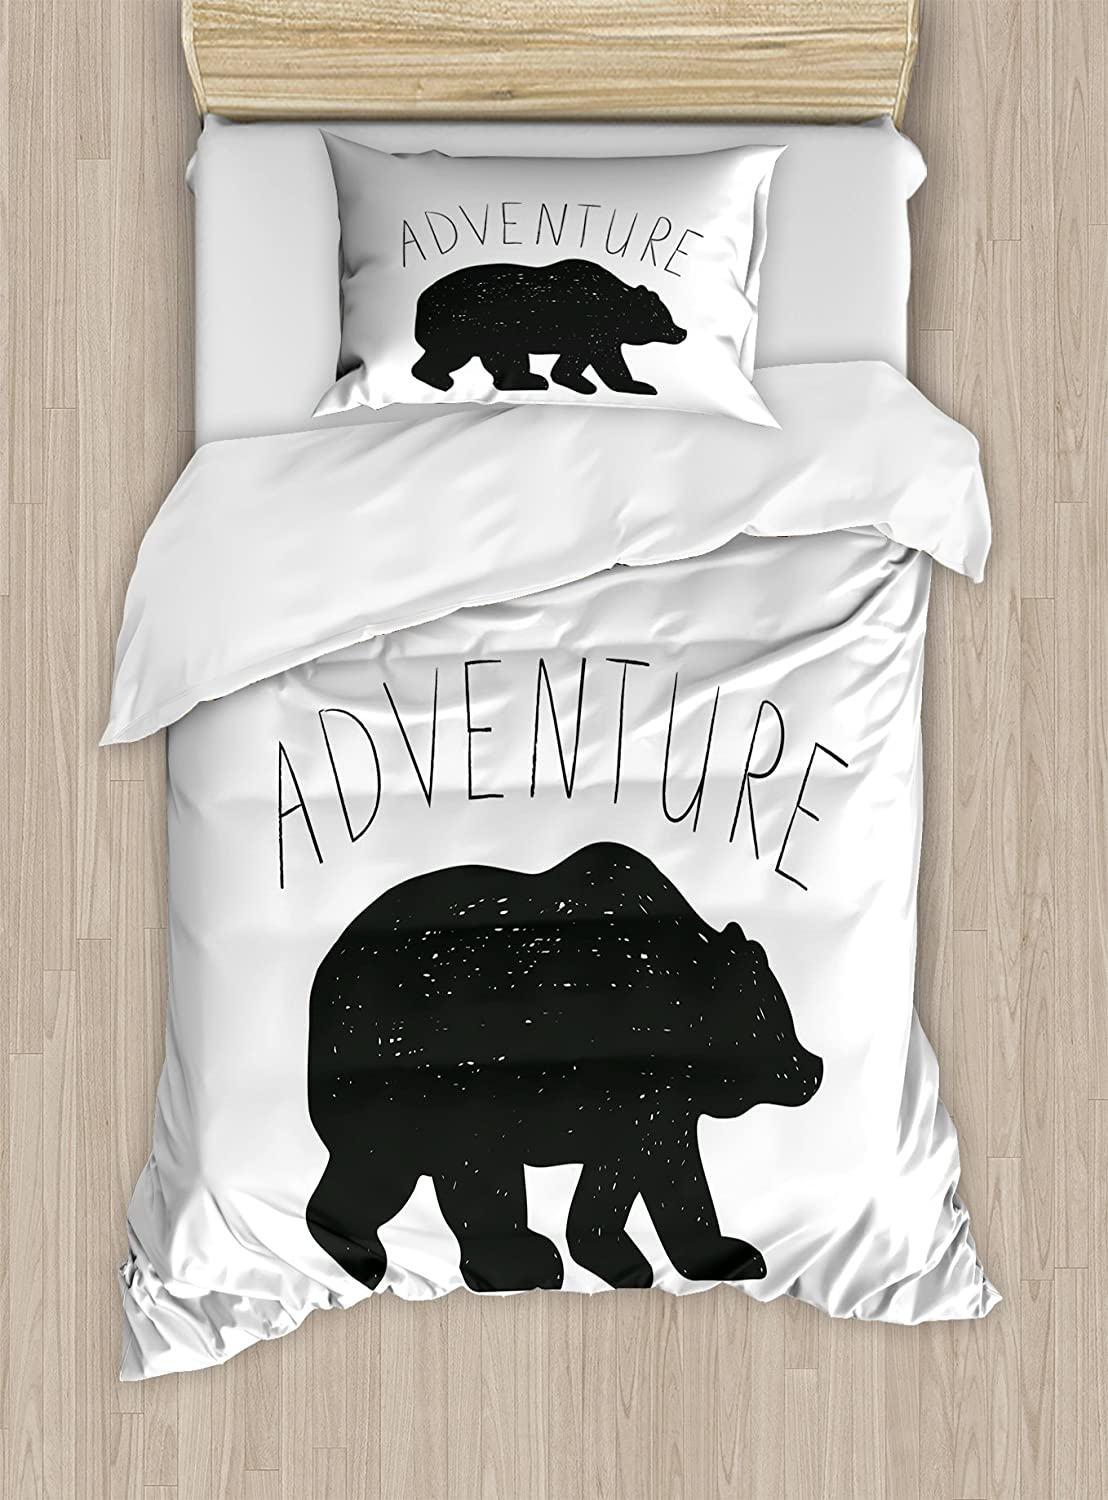 Ambesonne Adventure Duvet Cover Set, Black Silhouette of a Wild Bear Zoo Animal Nature Passion Hipster Design, Decorative 2 Piece Bedding Set with 1 Pillow Sham, Twin Size, Grey White